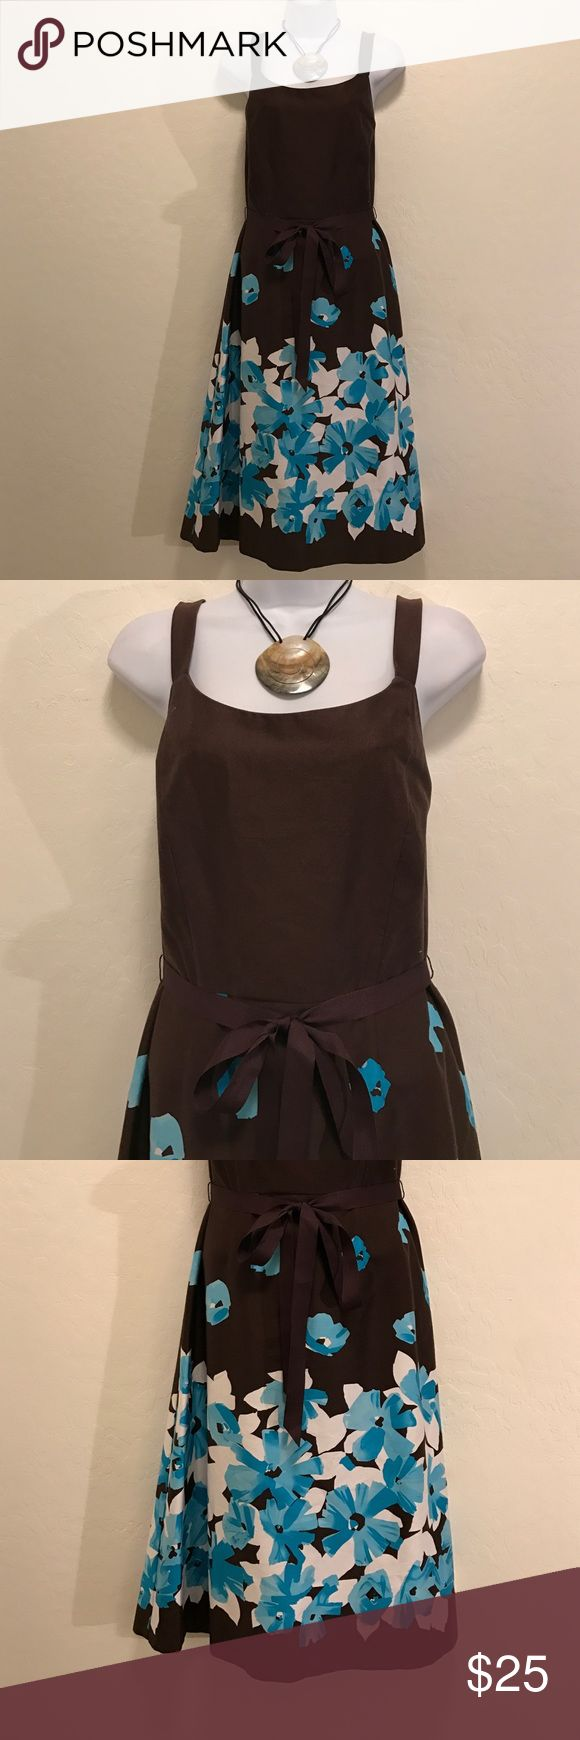 🔴SALE Studio I Brown Blue Floral Dress Excellent Condition, Cool Colors & Print, Accessories not included. Back Zipper, Tie Brown Belt. Dresses